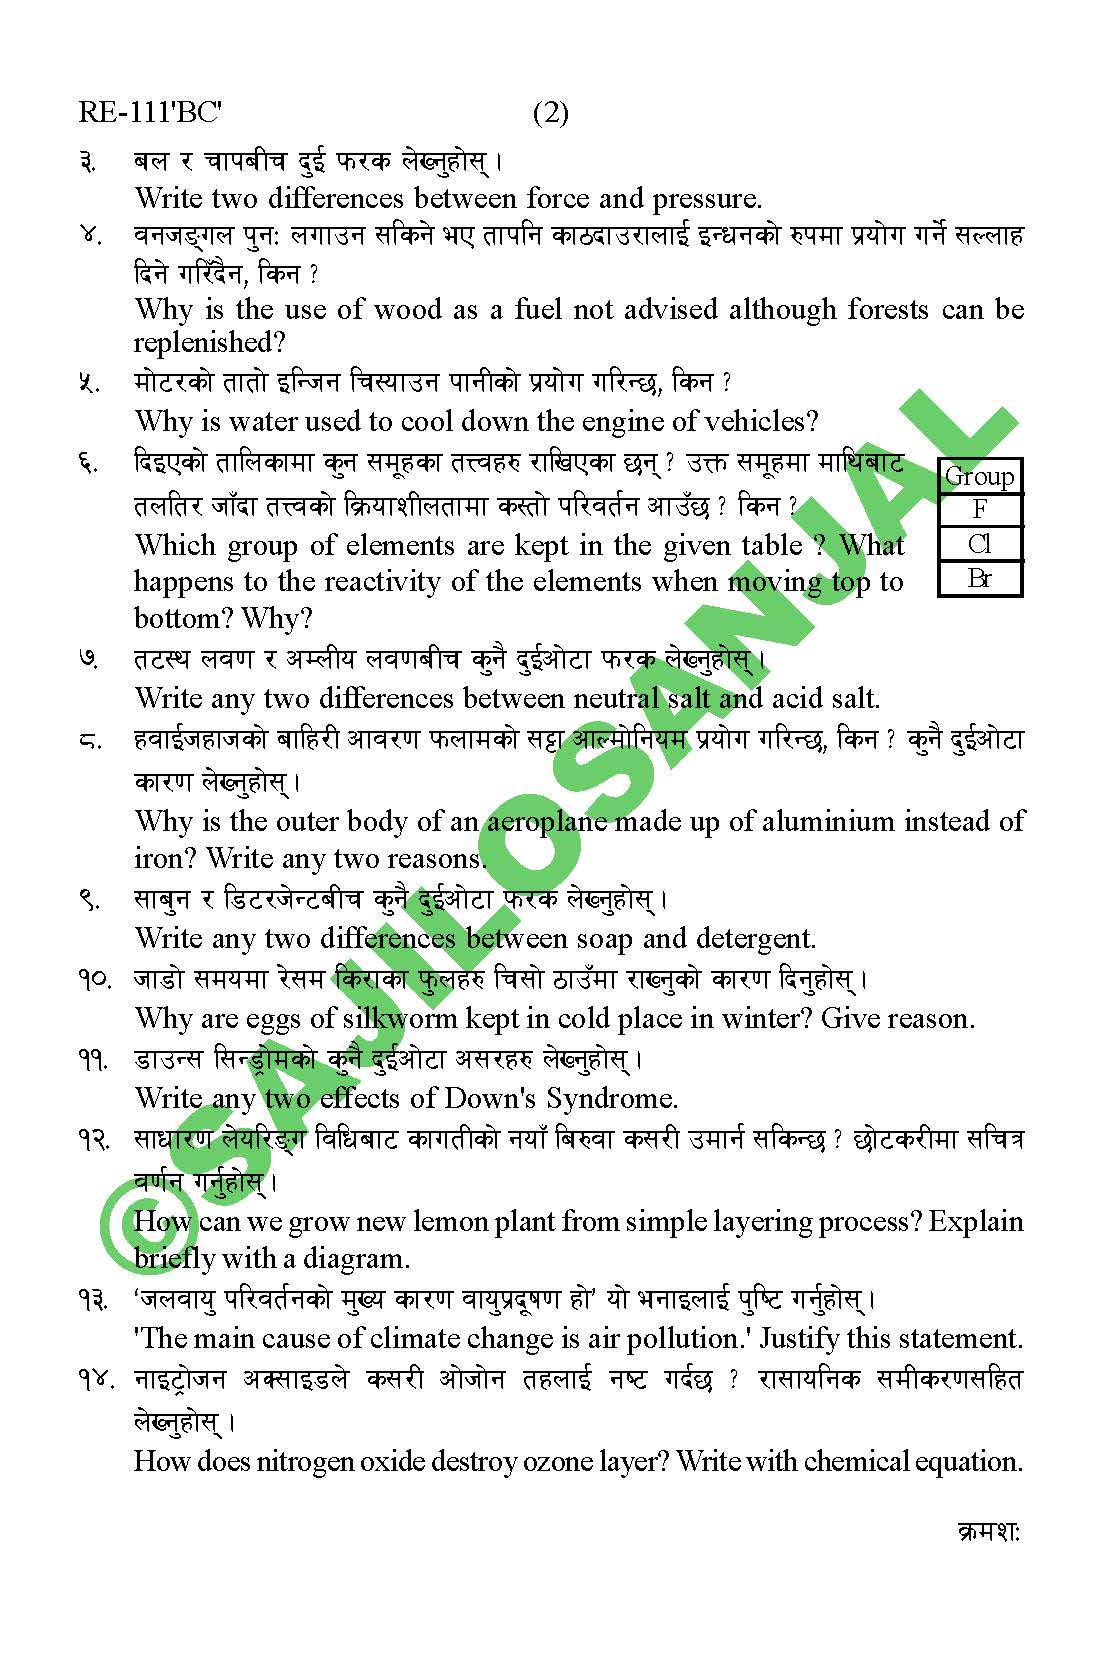 SEE Model Question, see model question Science, see question Science, see Science model question, SEE Question, SEE Science Question, See question paper, See Science Question paper, Science see model question, Science model question, see model question set, Science model question, see question, see model question Science 2075, see question Science 2075, see Science model question 2075, SEE Question 2075, SEE Science Question 2075, See question paper 2075, See Science Question paper 2075, Science see model question 2075,